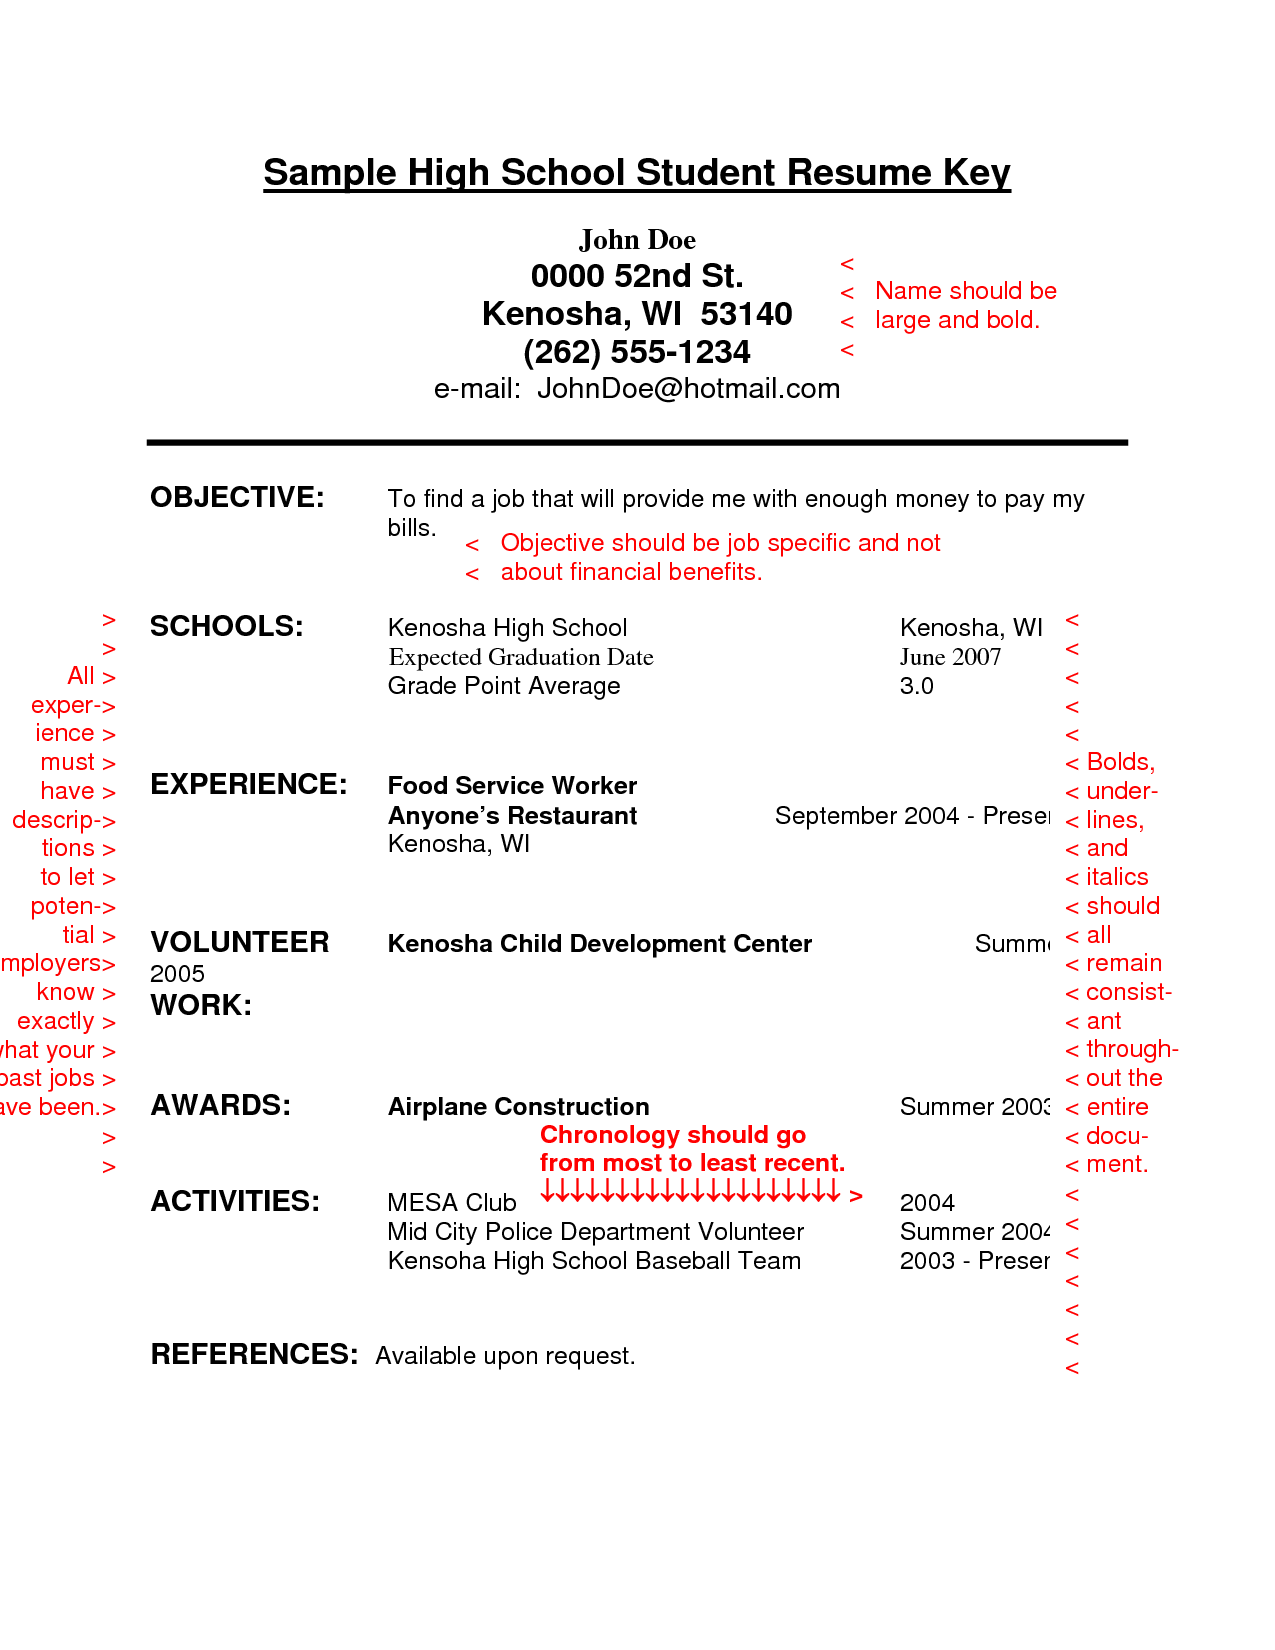 Job resume examples for high school students